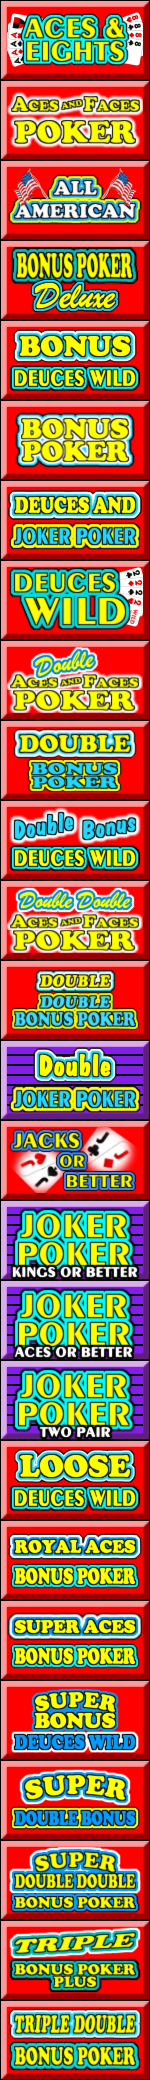 Single Hand Video Poker For Real Money Or Free Wizard Of